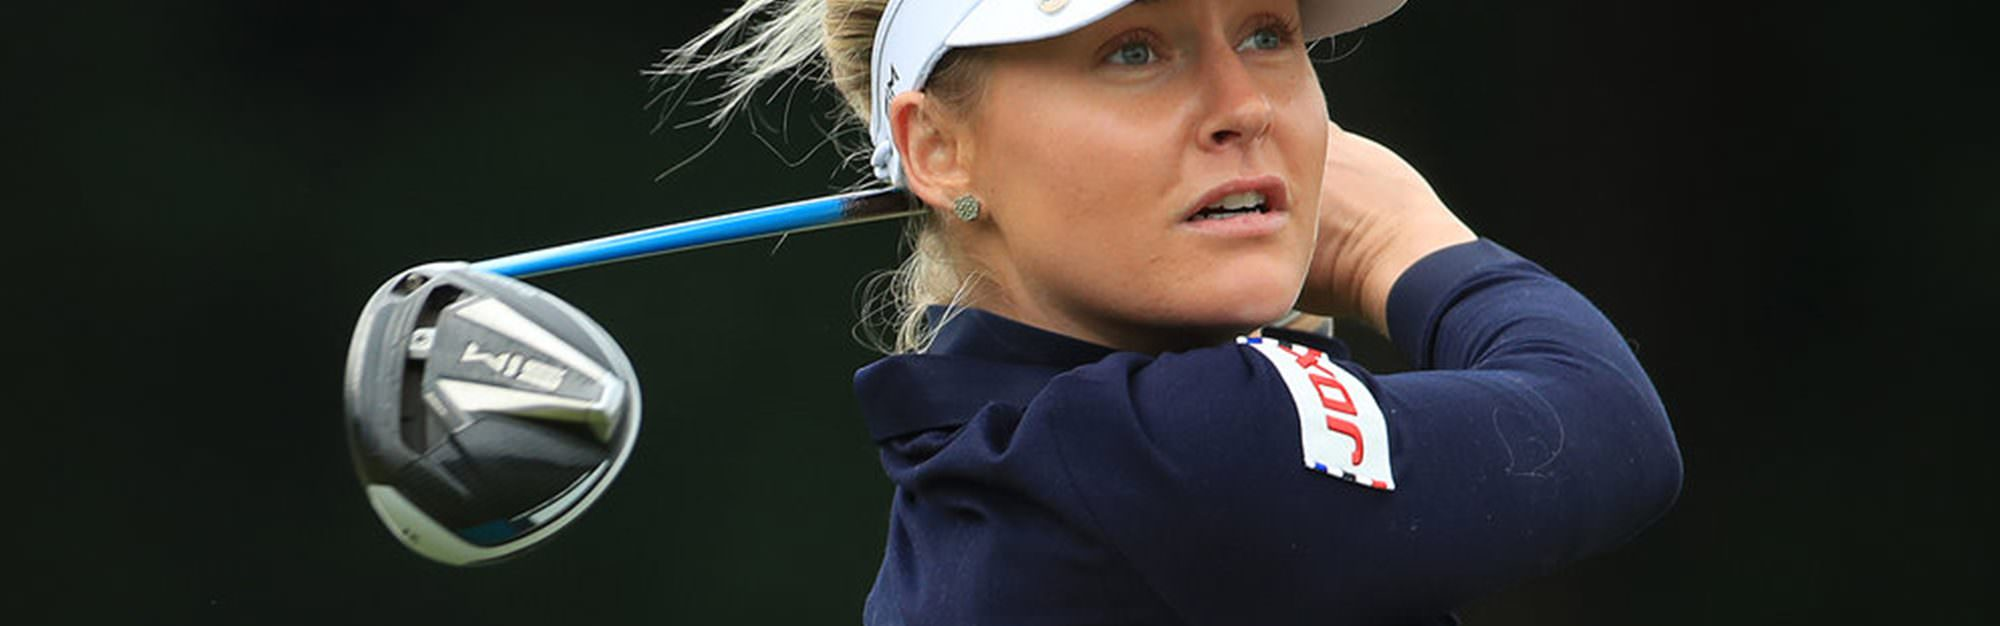 'If you're a professional golfer why do you need help?' Hull longs for a return of the golden age